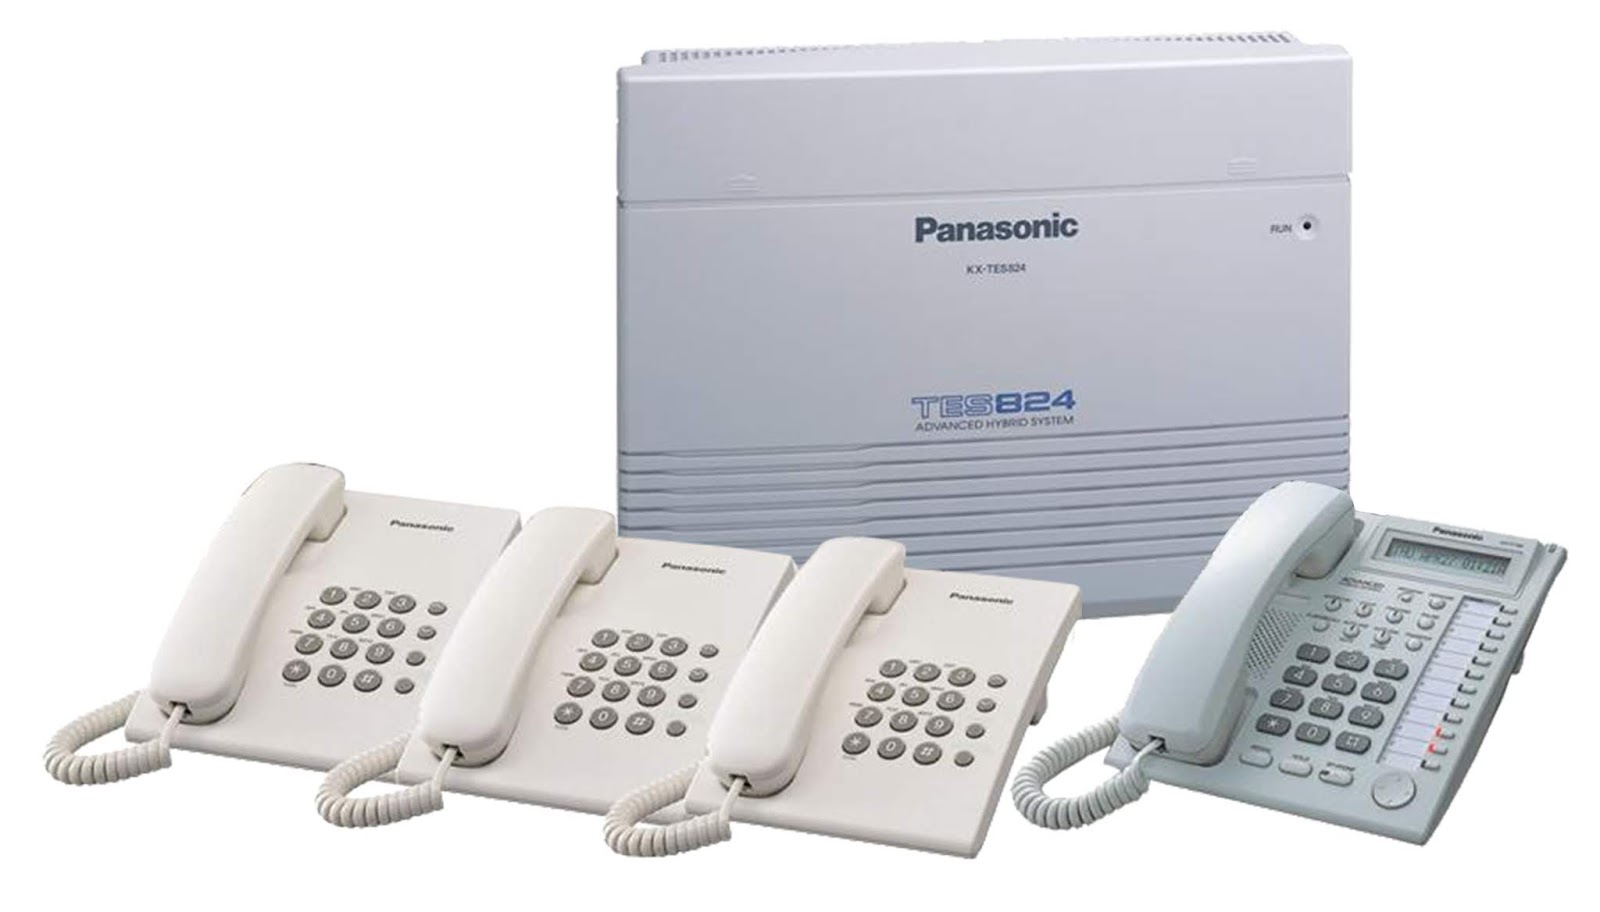 Programming Simple PABX Panasonic KX-TES824 - Winda Wijayanti